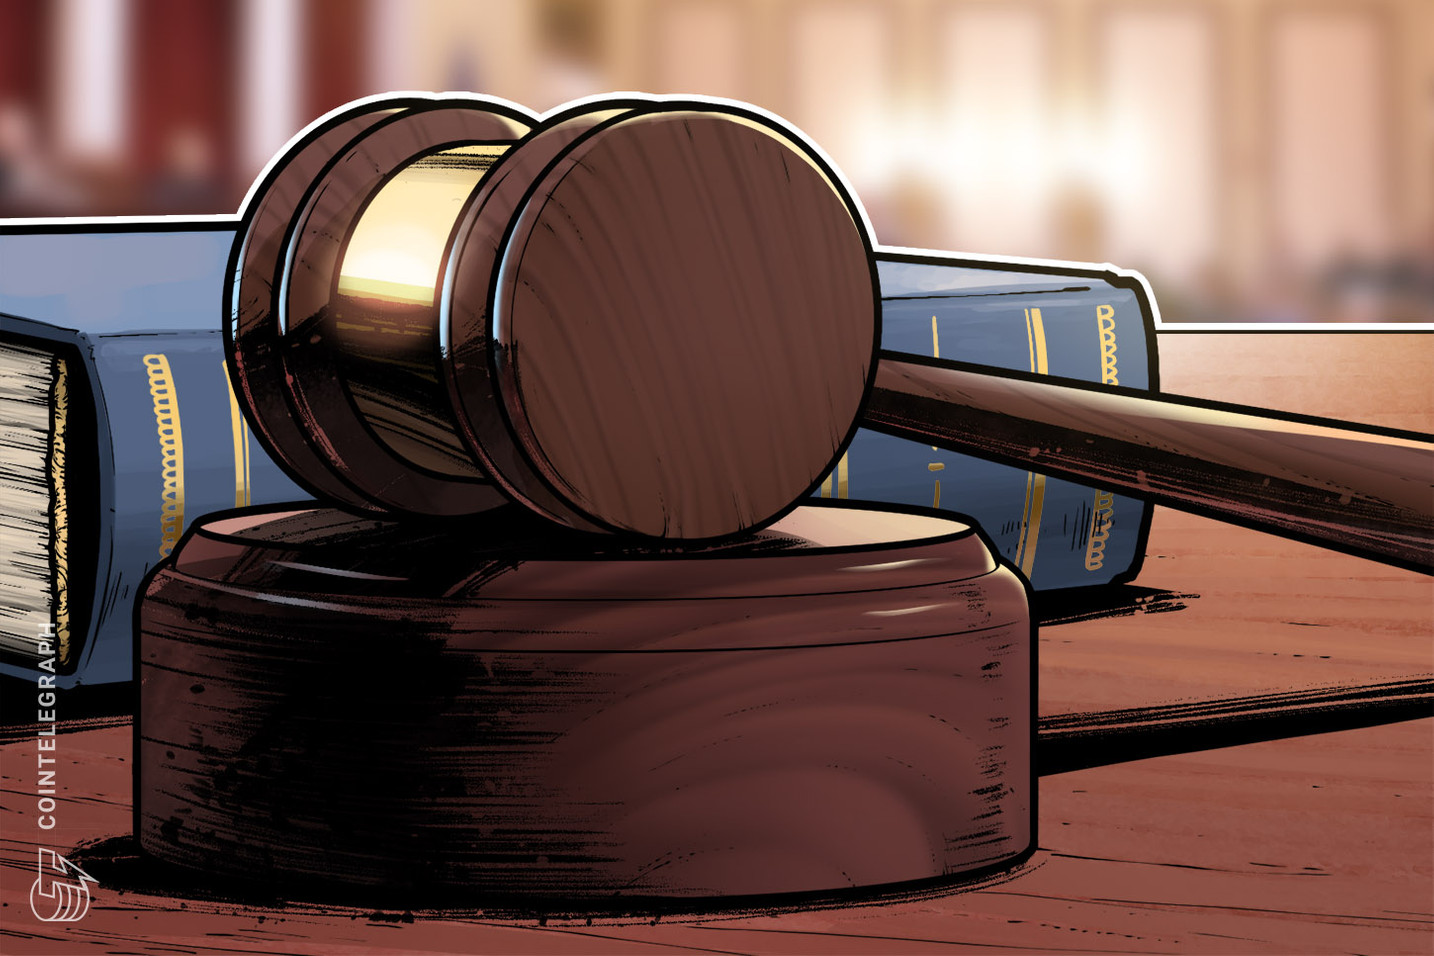 Ex-Employee Sues Zcash Operator in $2 Million Lawsuit Over Unpaid Stocks